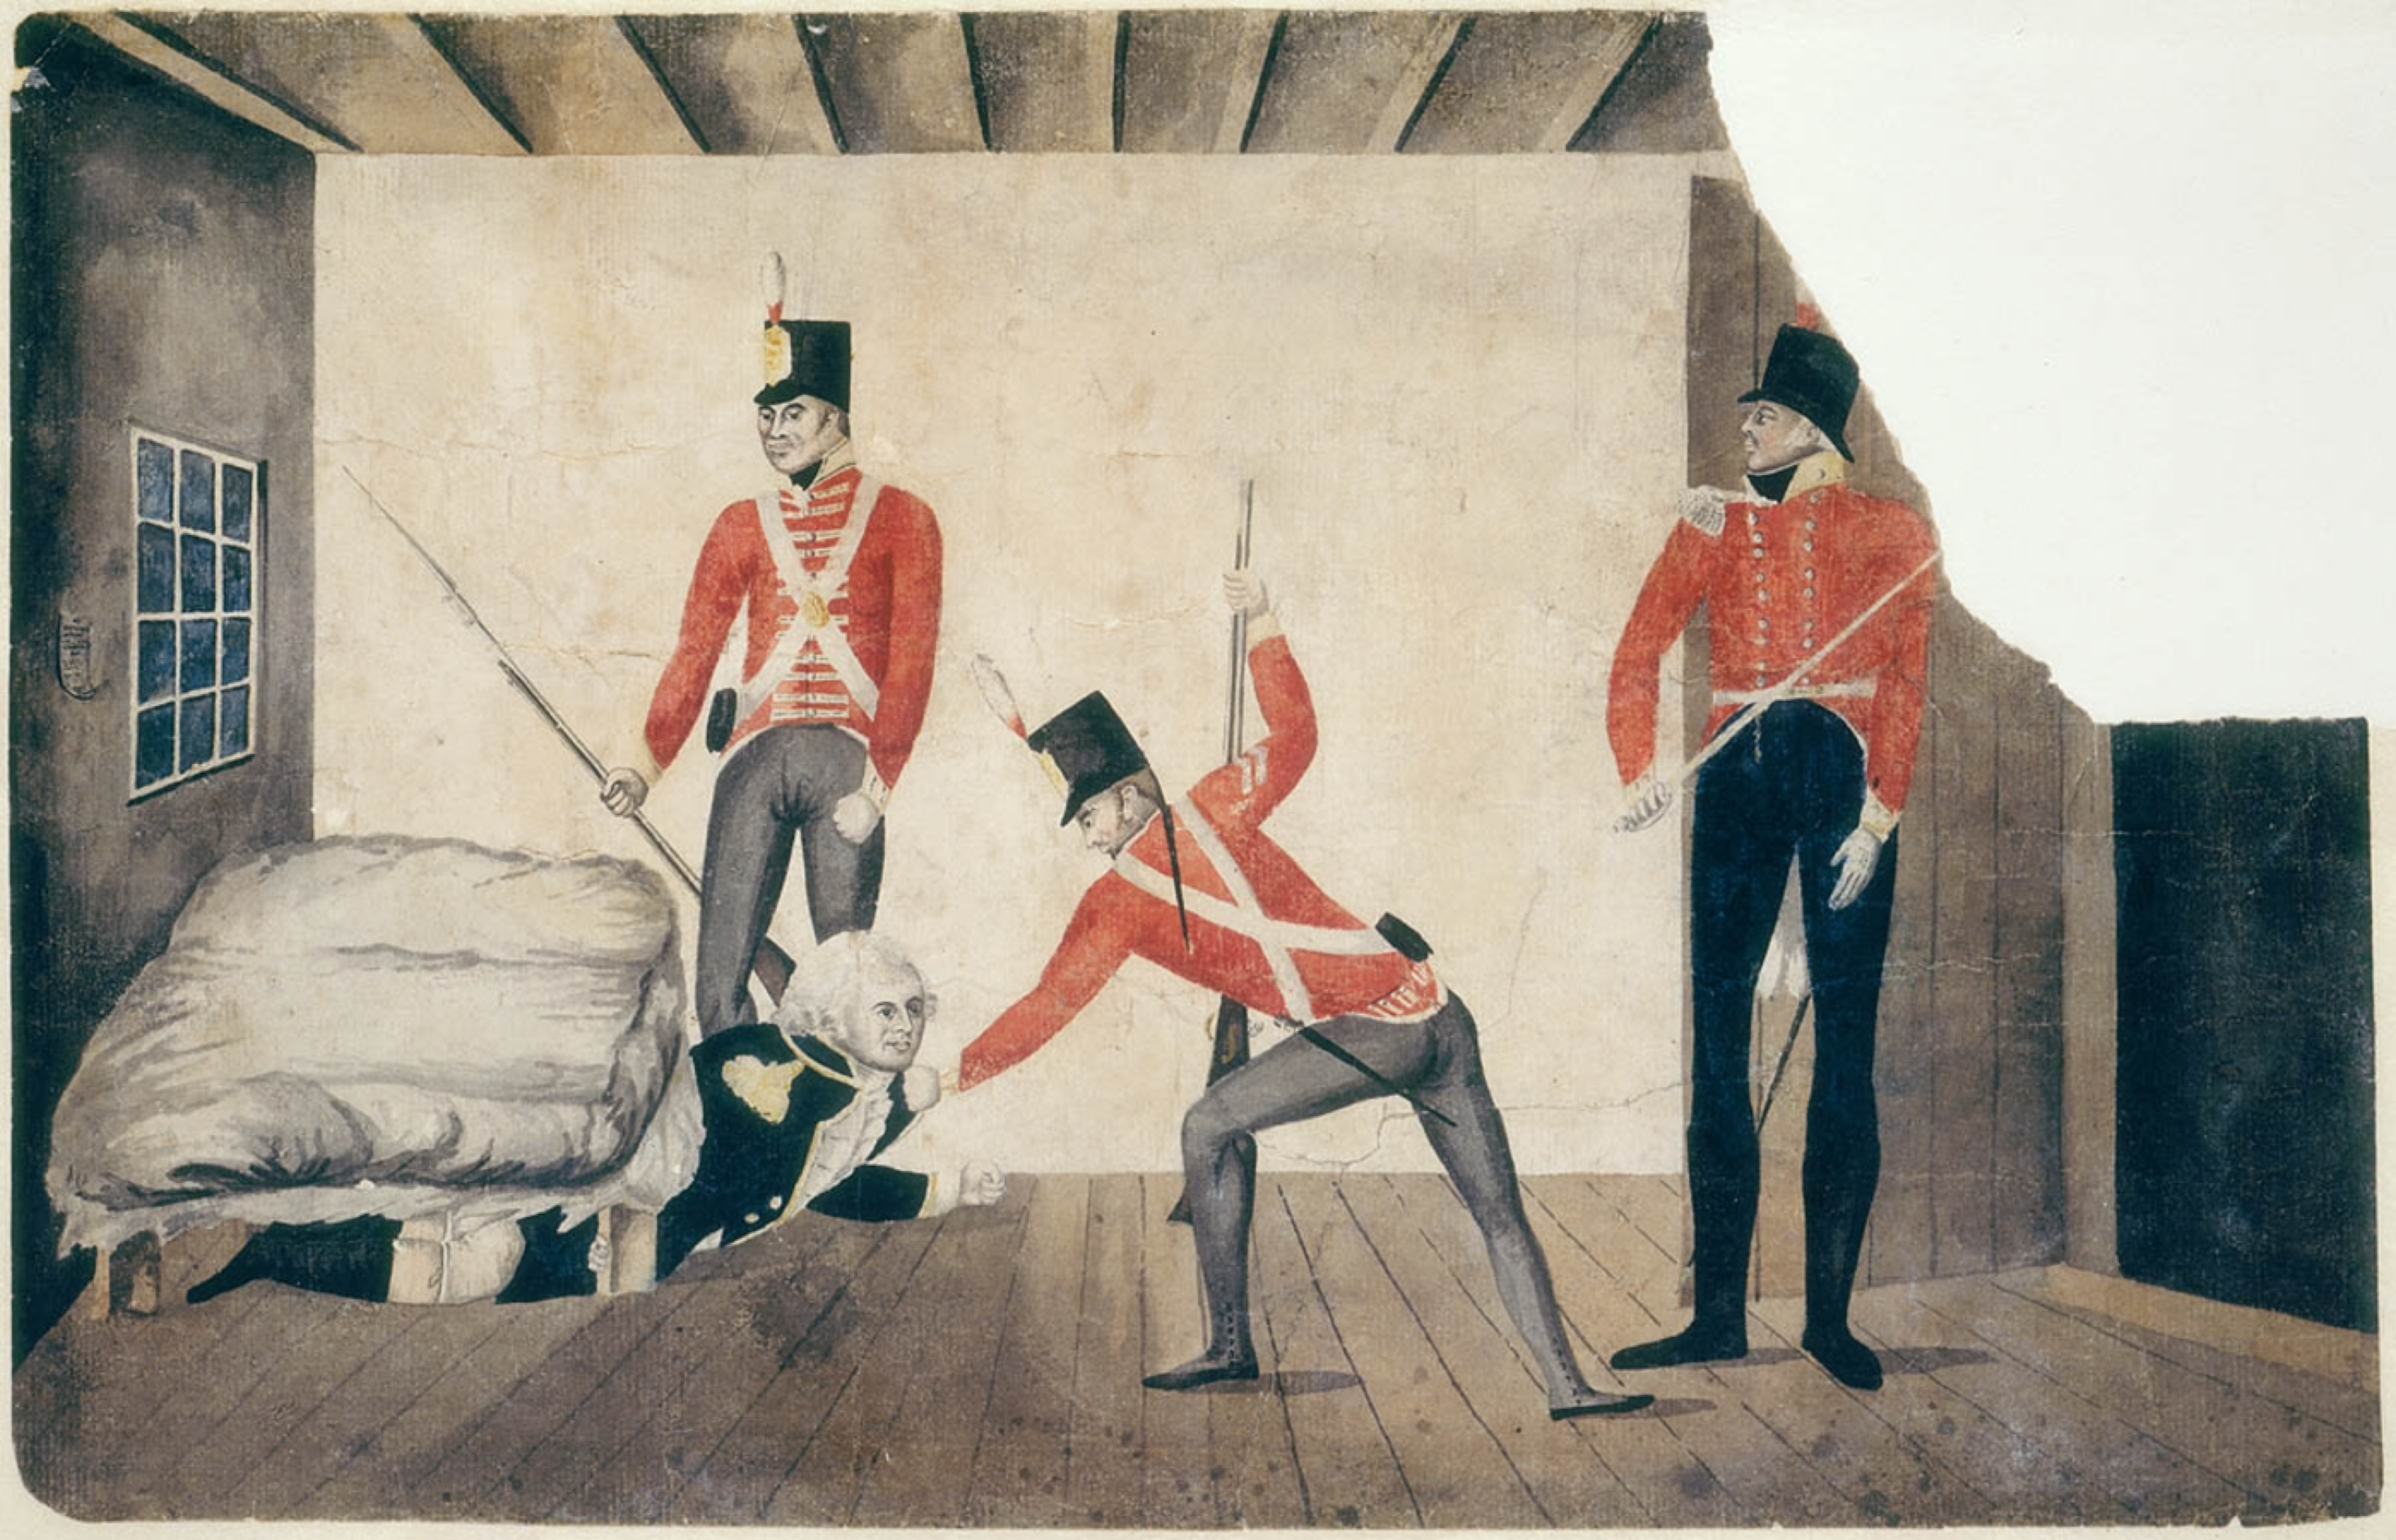 The Arrest of Governor Bligh, 1808, William Bligh, Surgeon John Harris Esquire, St. John's Cemetery Project, Old Parramattans, Rum Rebellion, St. John's Cemetery, Parramatta, Sydney, Govn. Bligh under the Bed, Sketch of Bligh's / arrest by / Lieut. Michin